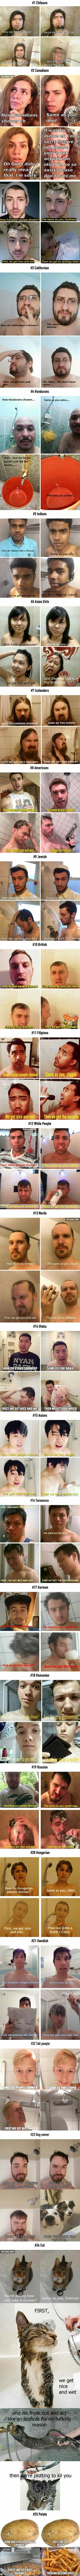 How do Australians shower? Just like you! First we get a little wet, then we put some shrimp on the barbie.